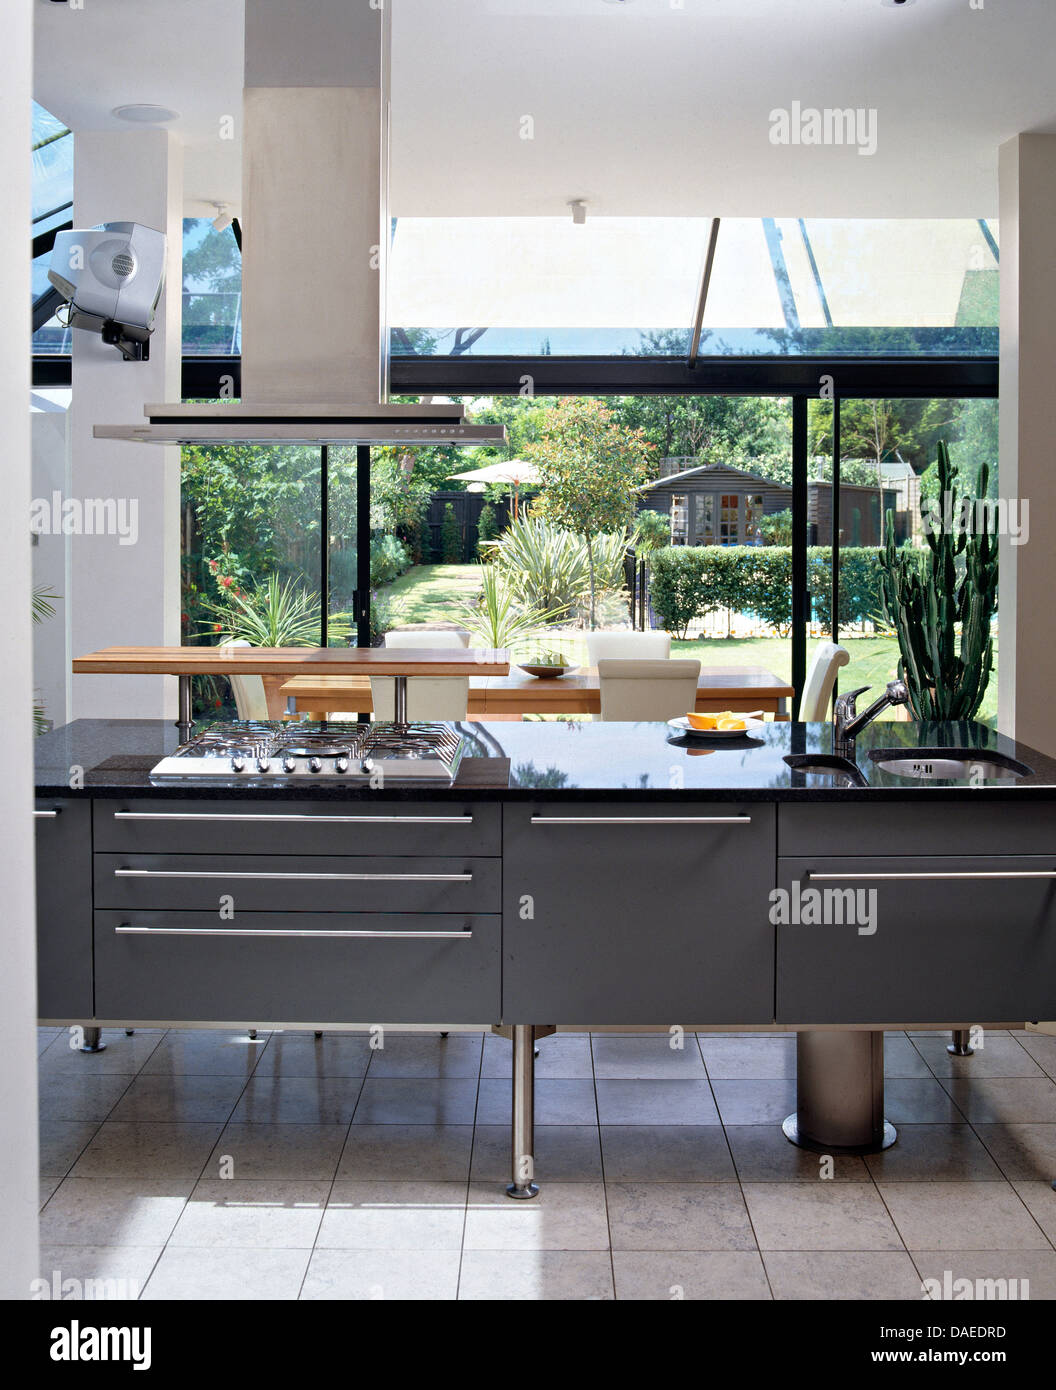 Etonnant Extractor Fan Above Gas Hob In Black Central Unit In Modern Kitchen With  View Of The Garden Through Large Window